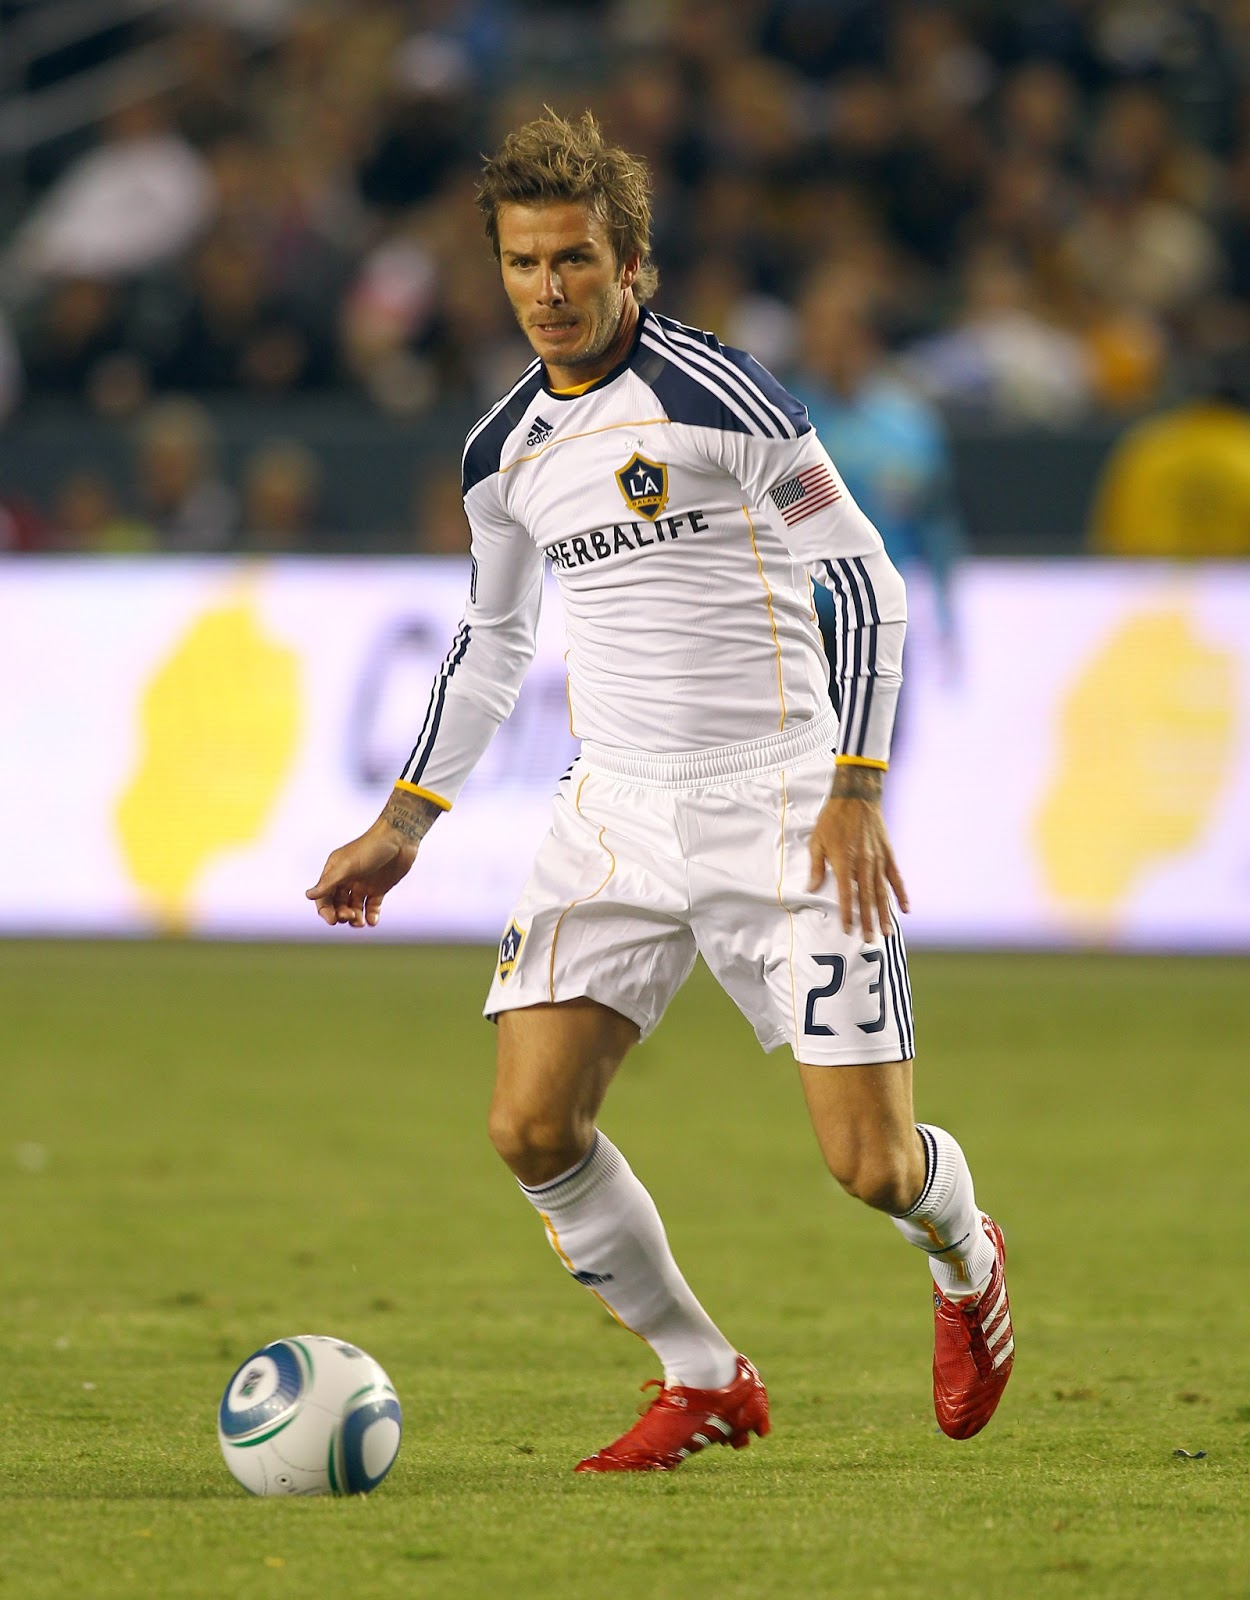 Soccer Players: DaviD BeckhaM Wallpapers With Football 2013